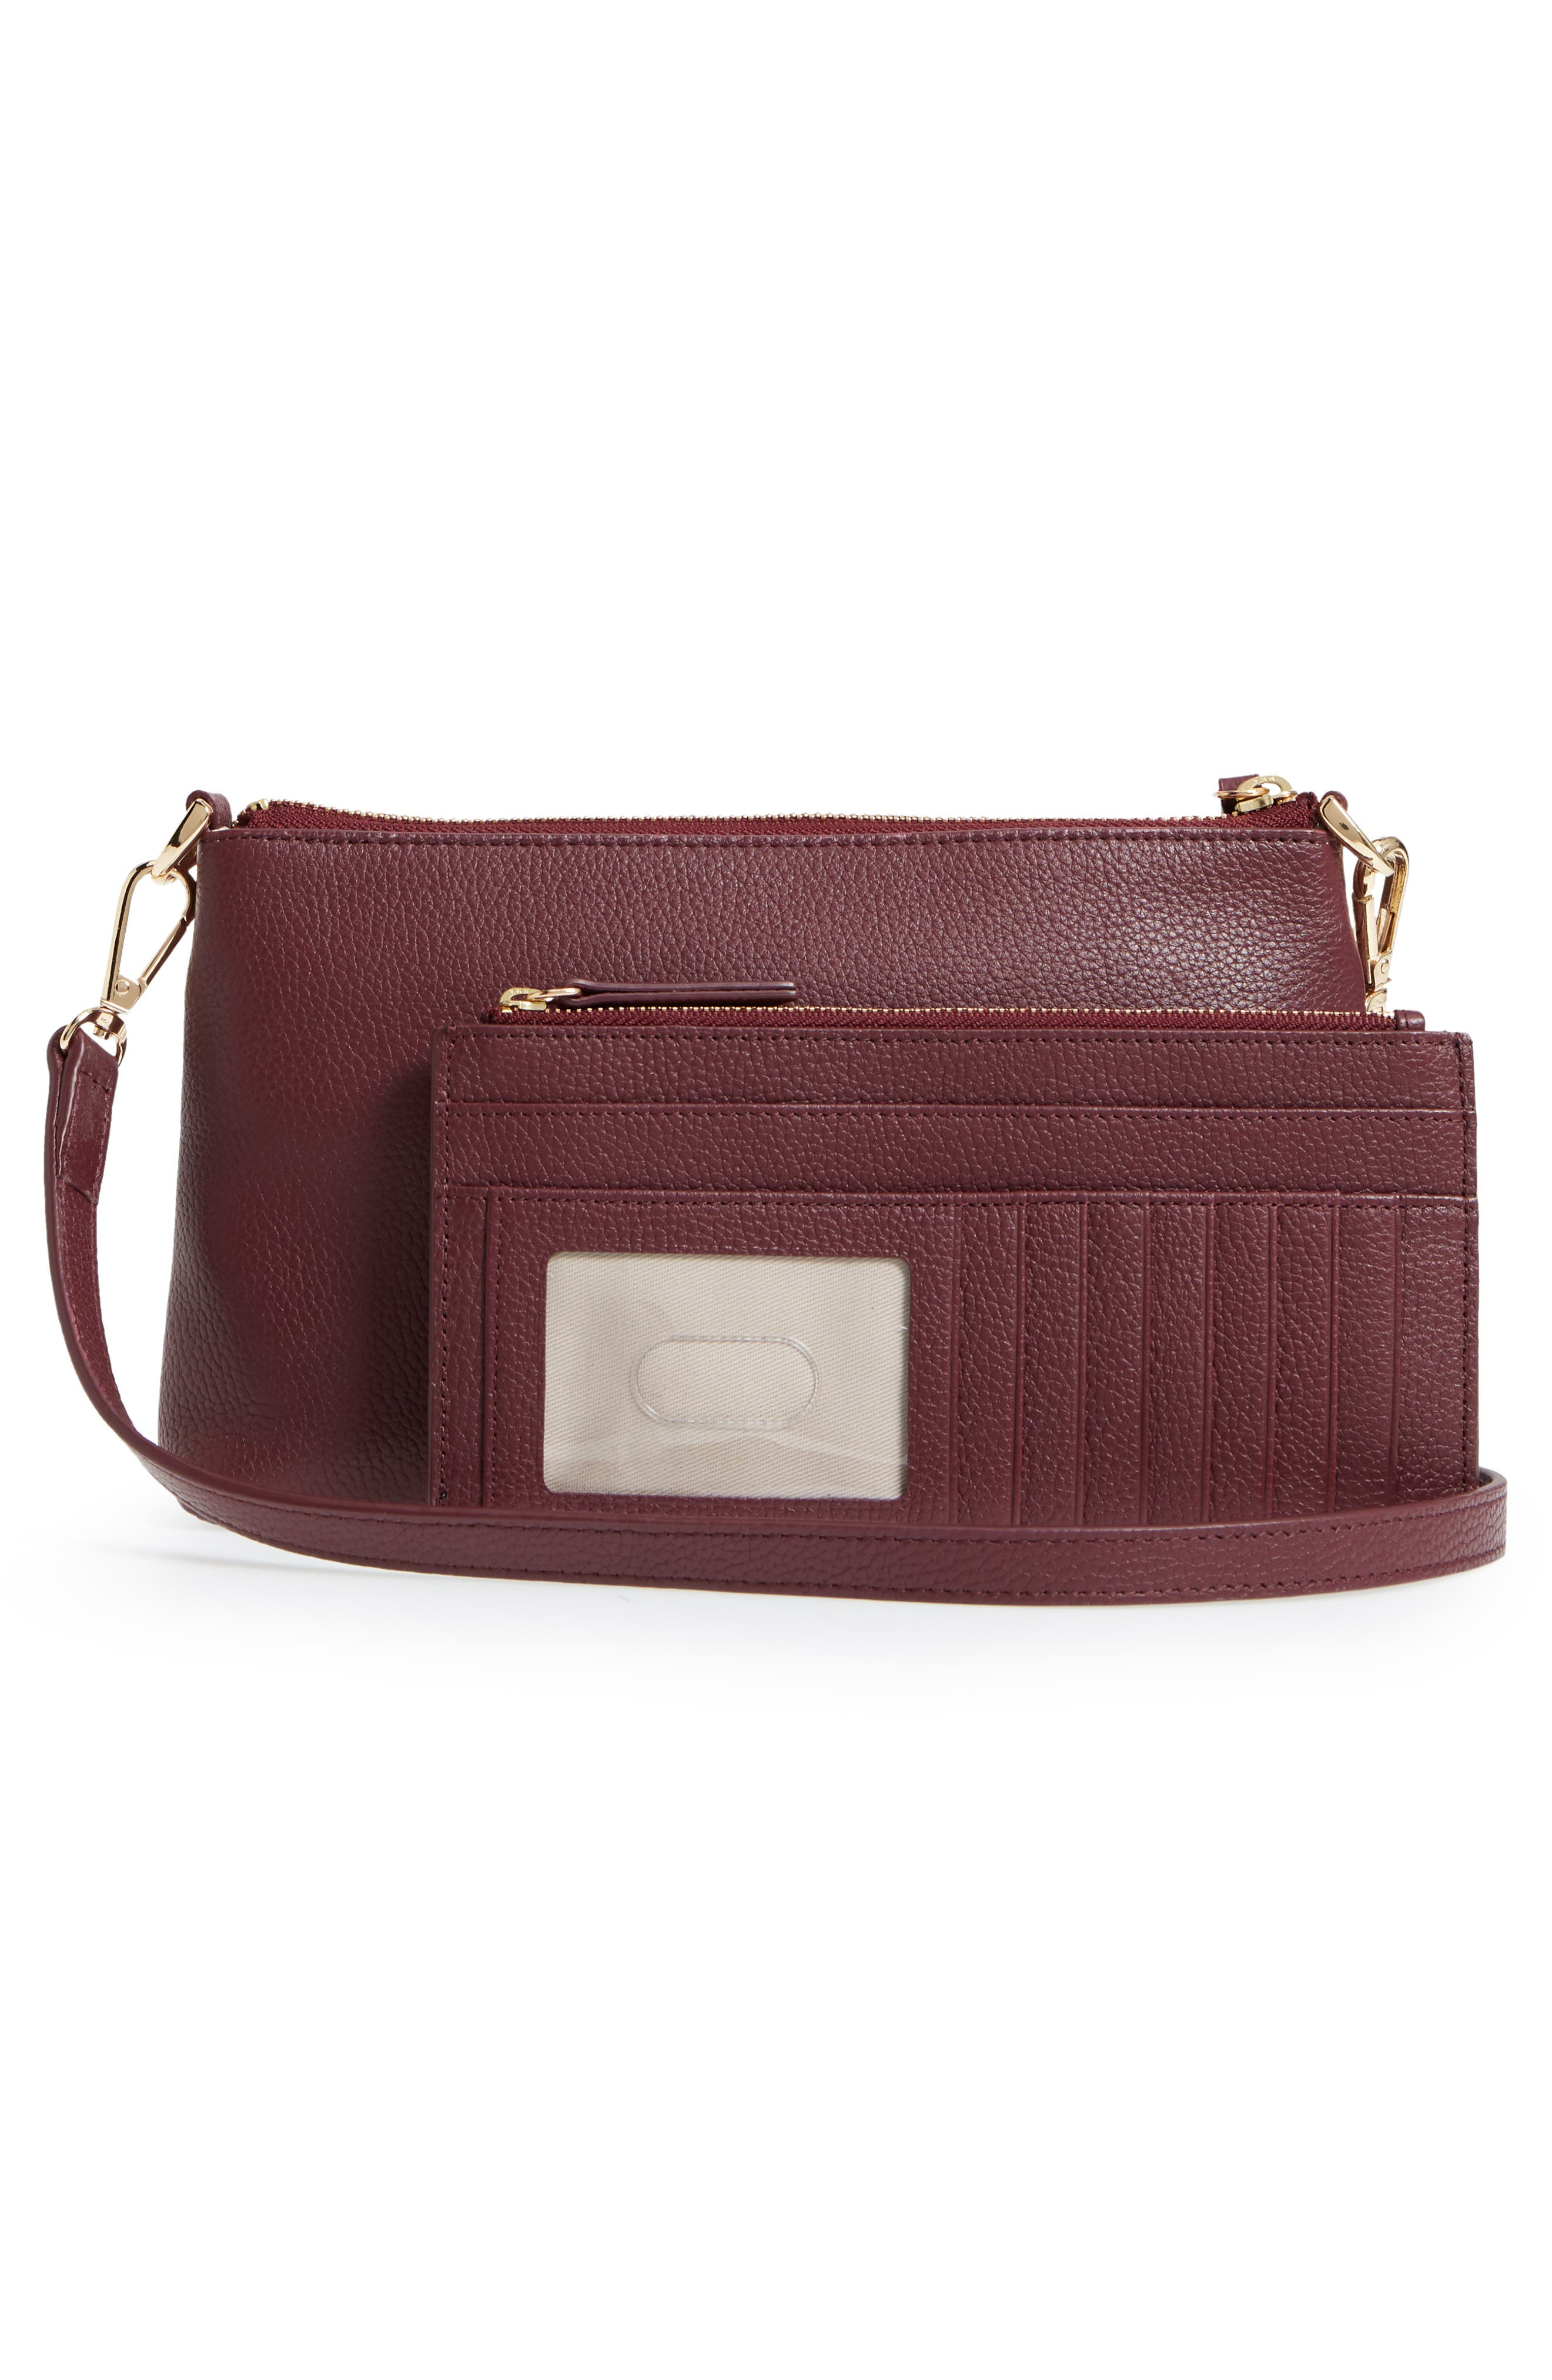 Brixton Convertible Leather Crossbody Bag with Pop-Out Card Holder,                             Alternate thumbnail 4, color,                             Burgundy London